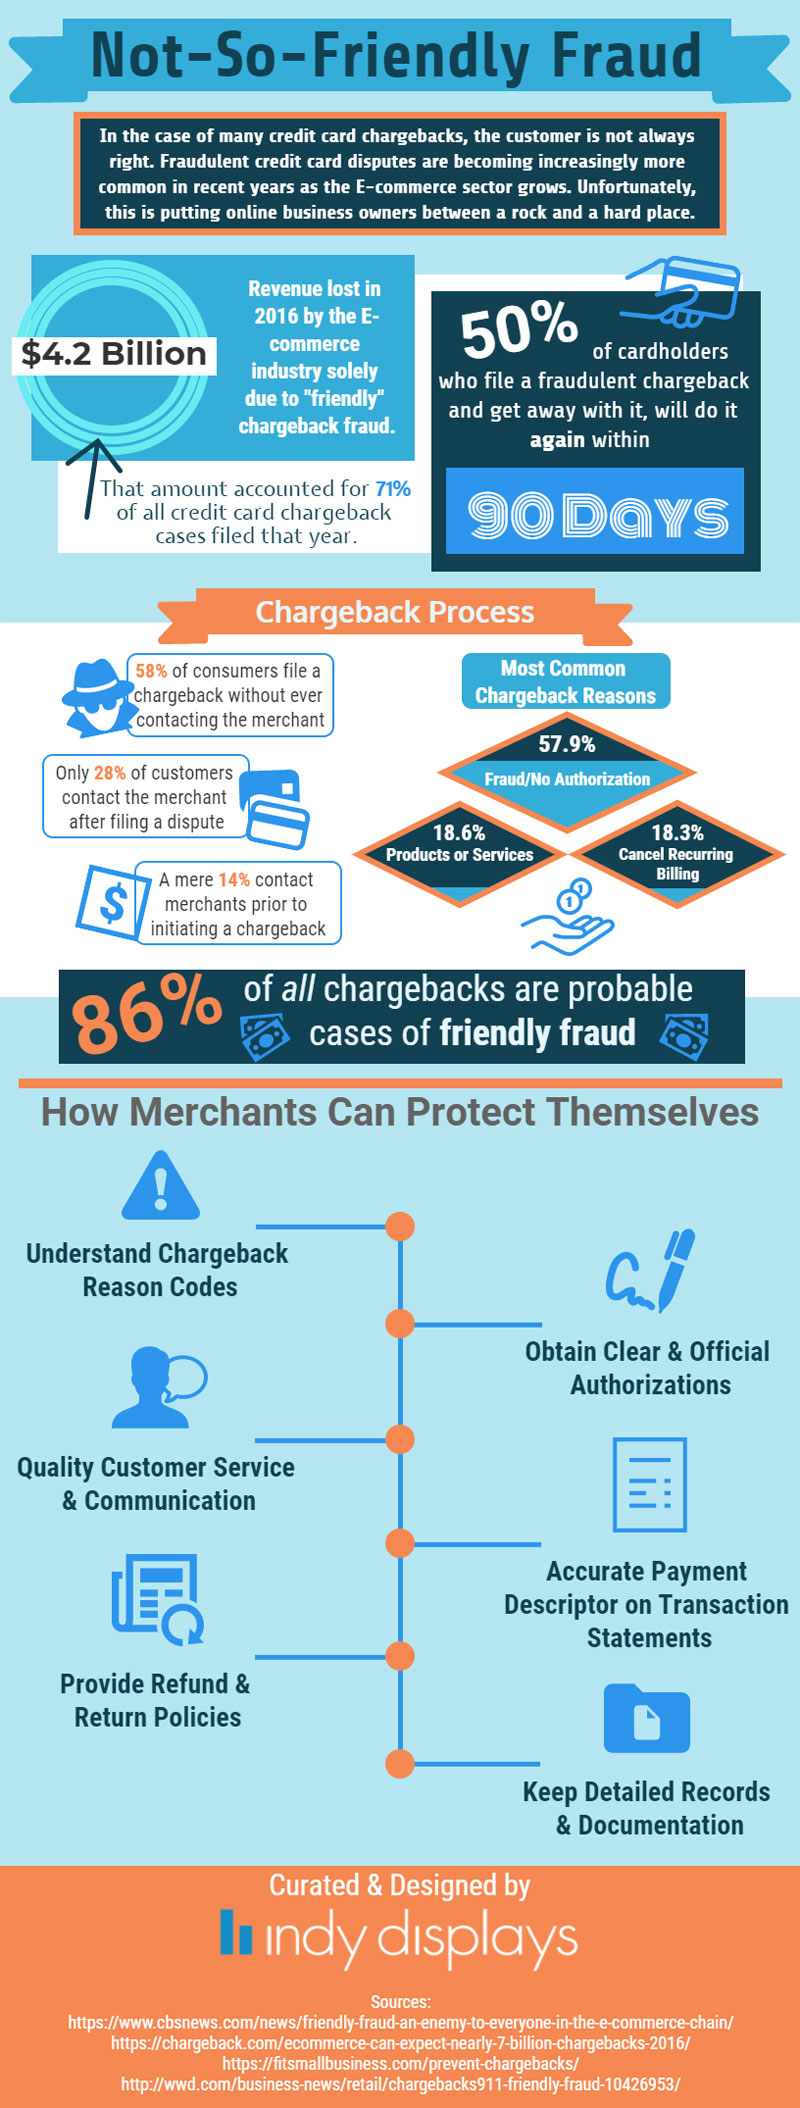 not so friendly fraud infographic